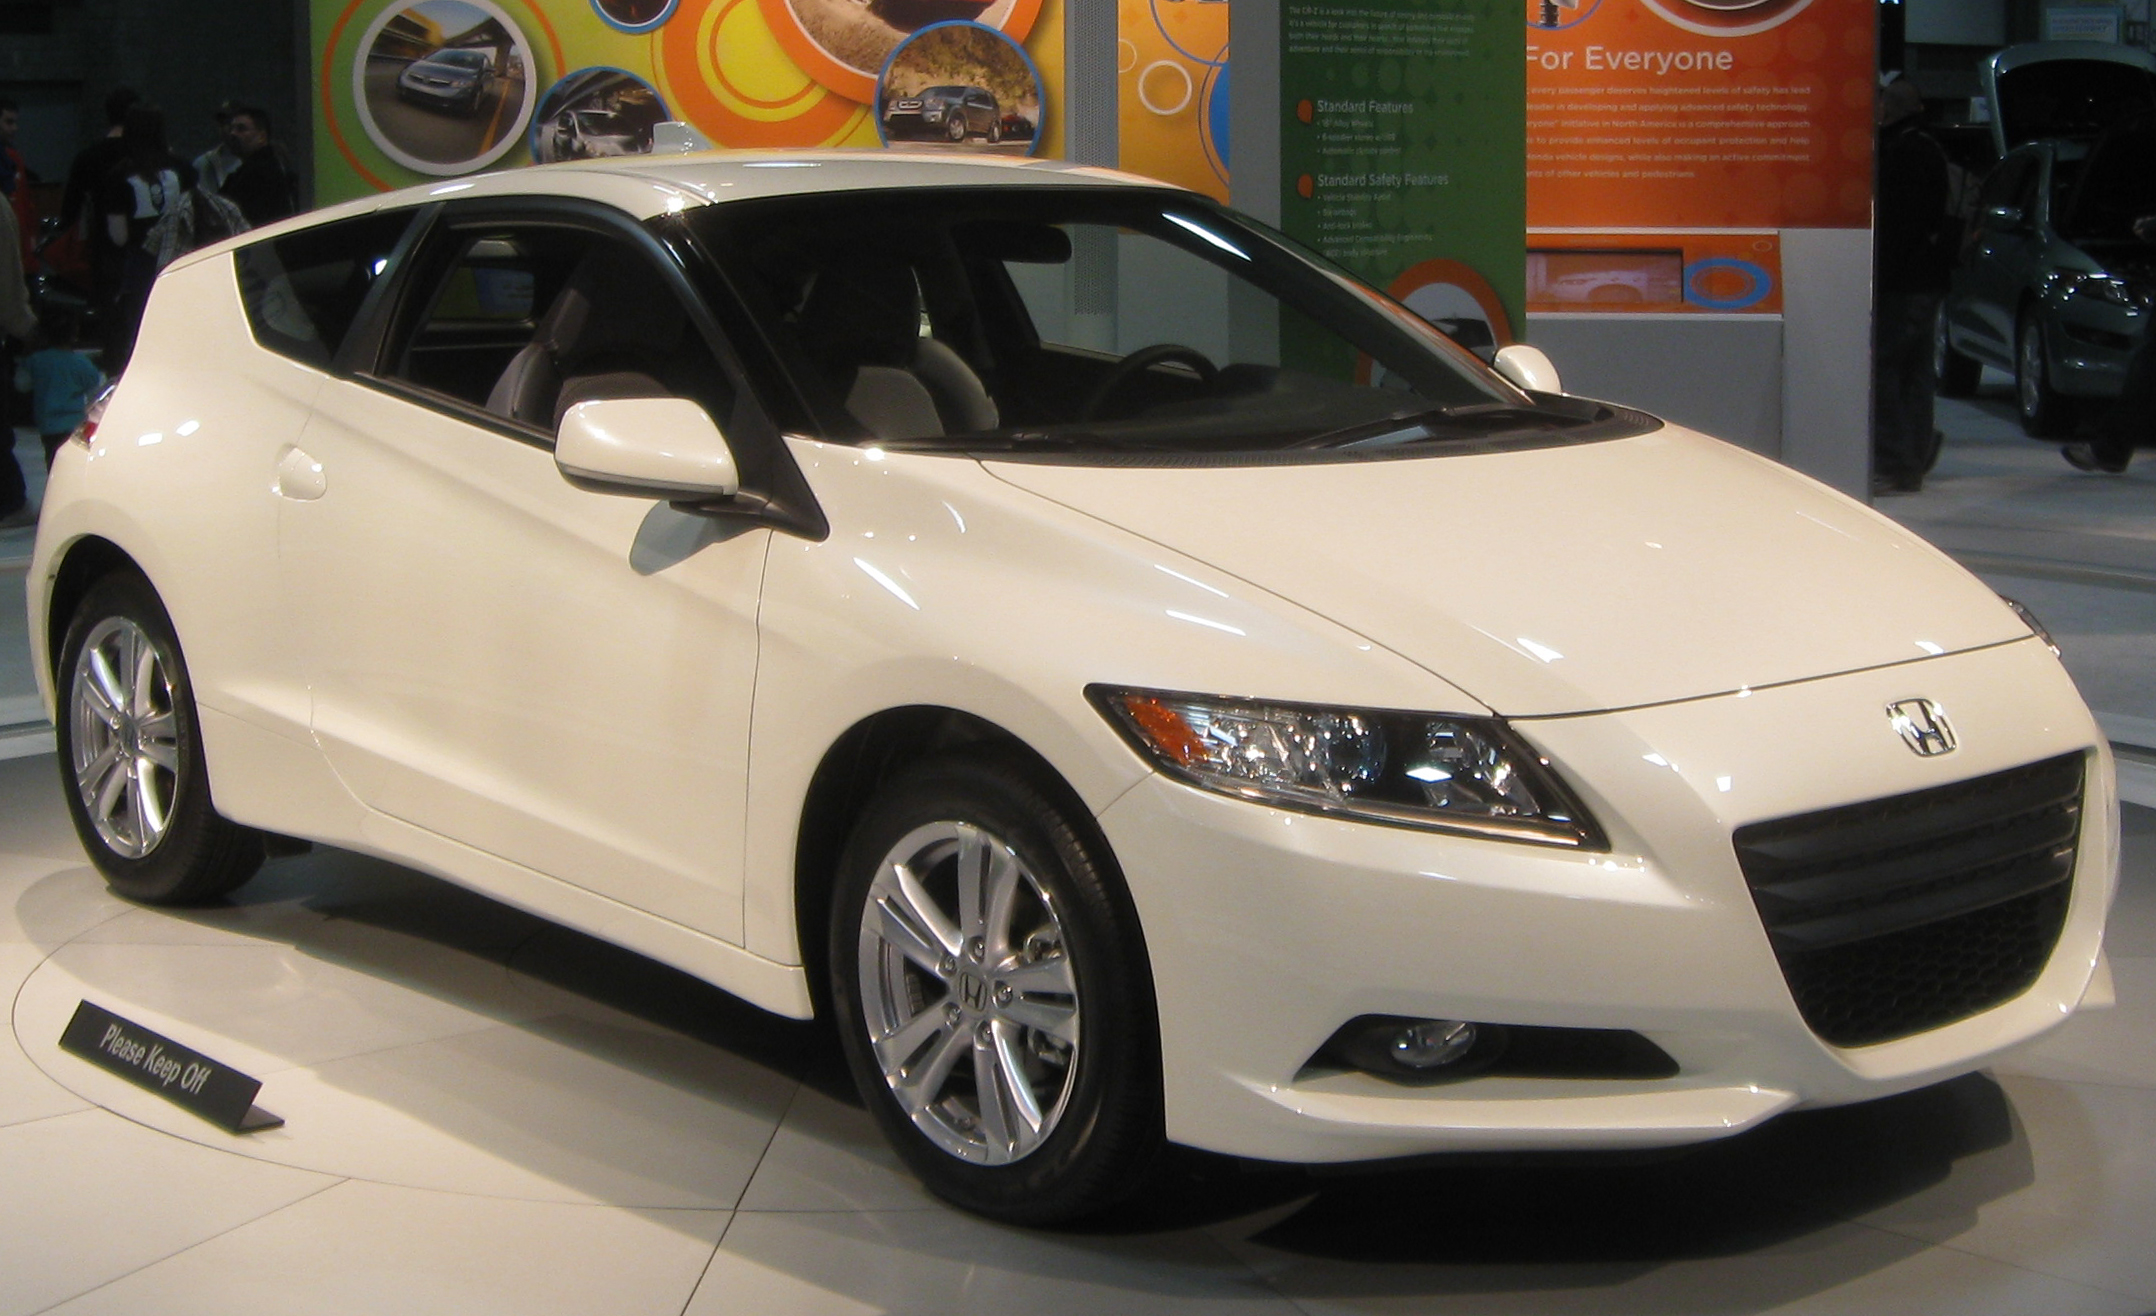 File:2011 Honda CR-Z front -- 2010 DC.jpg - Wikimedia Commons